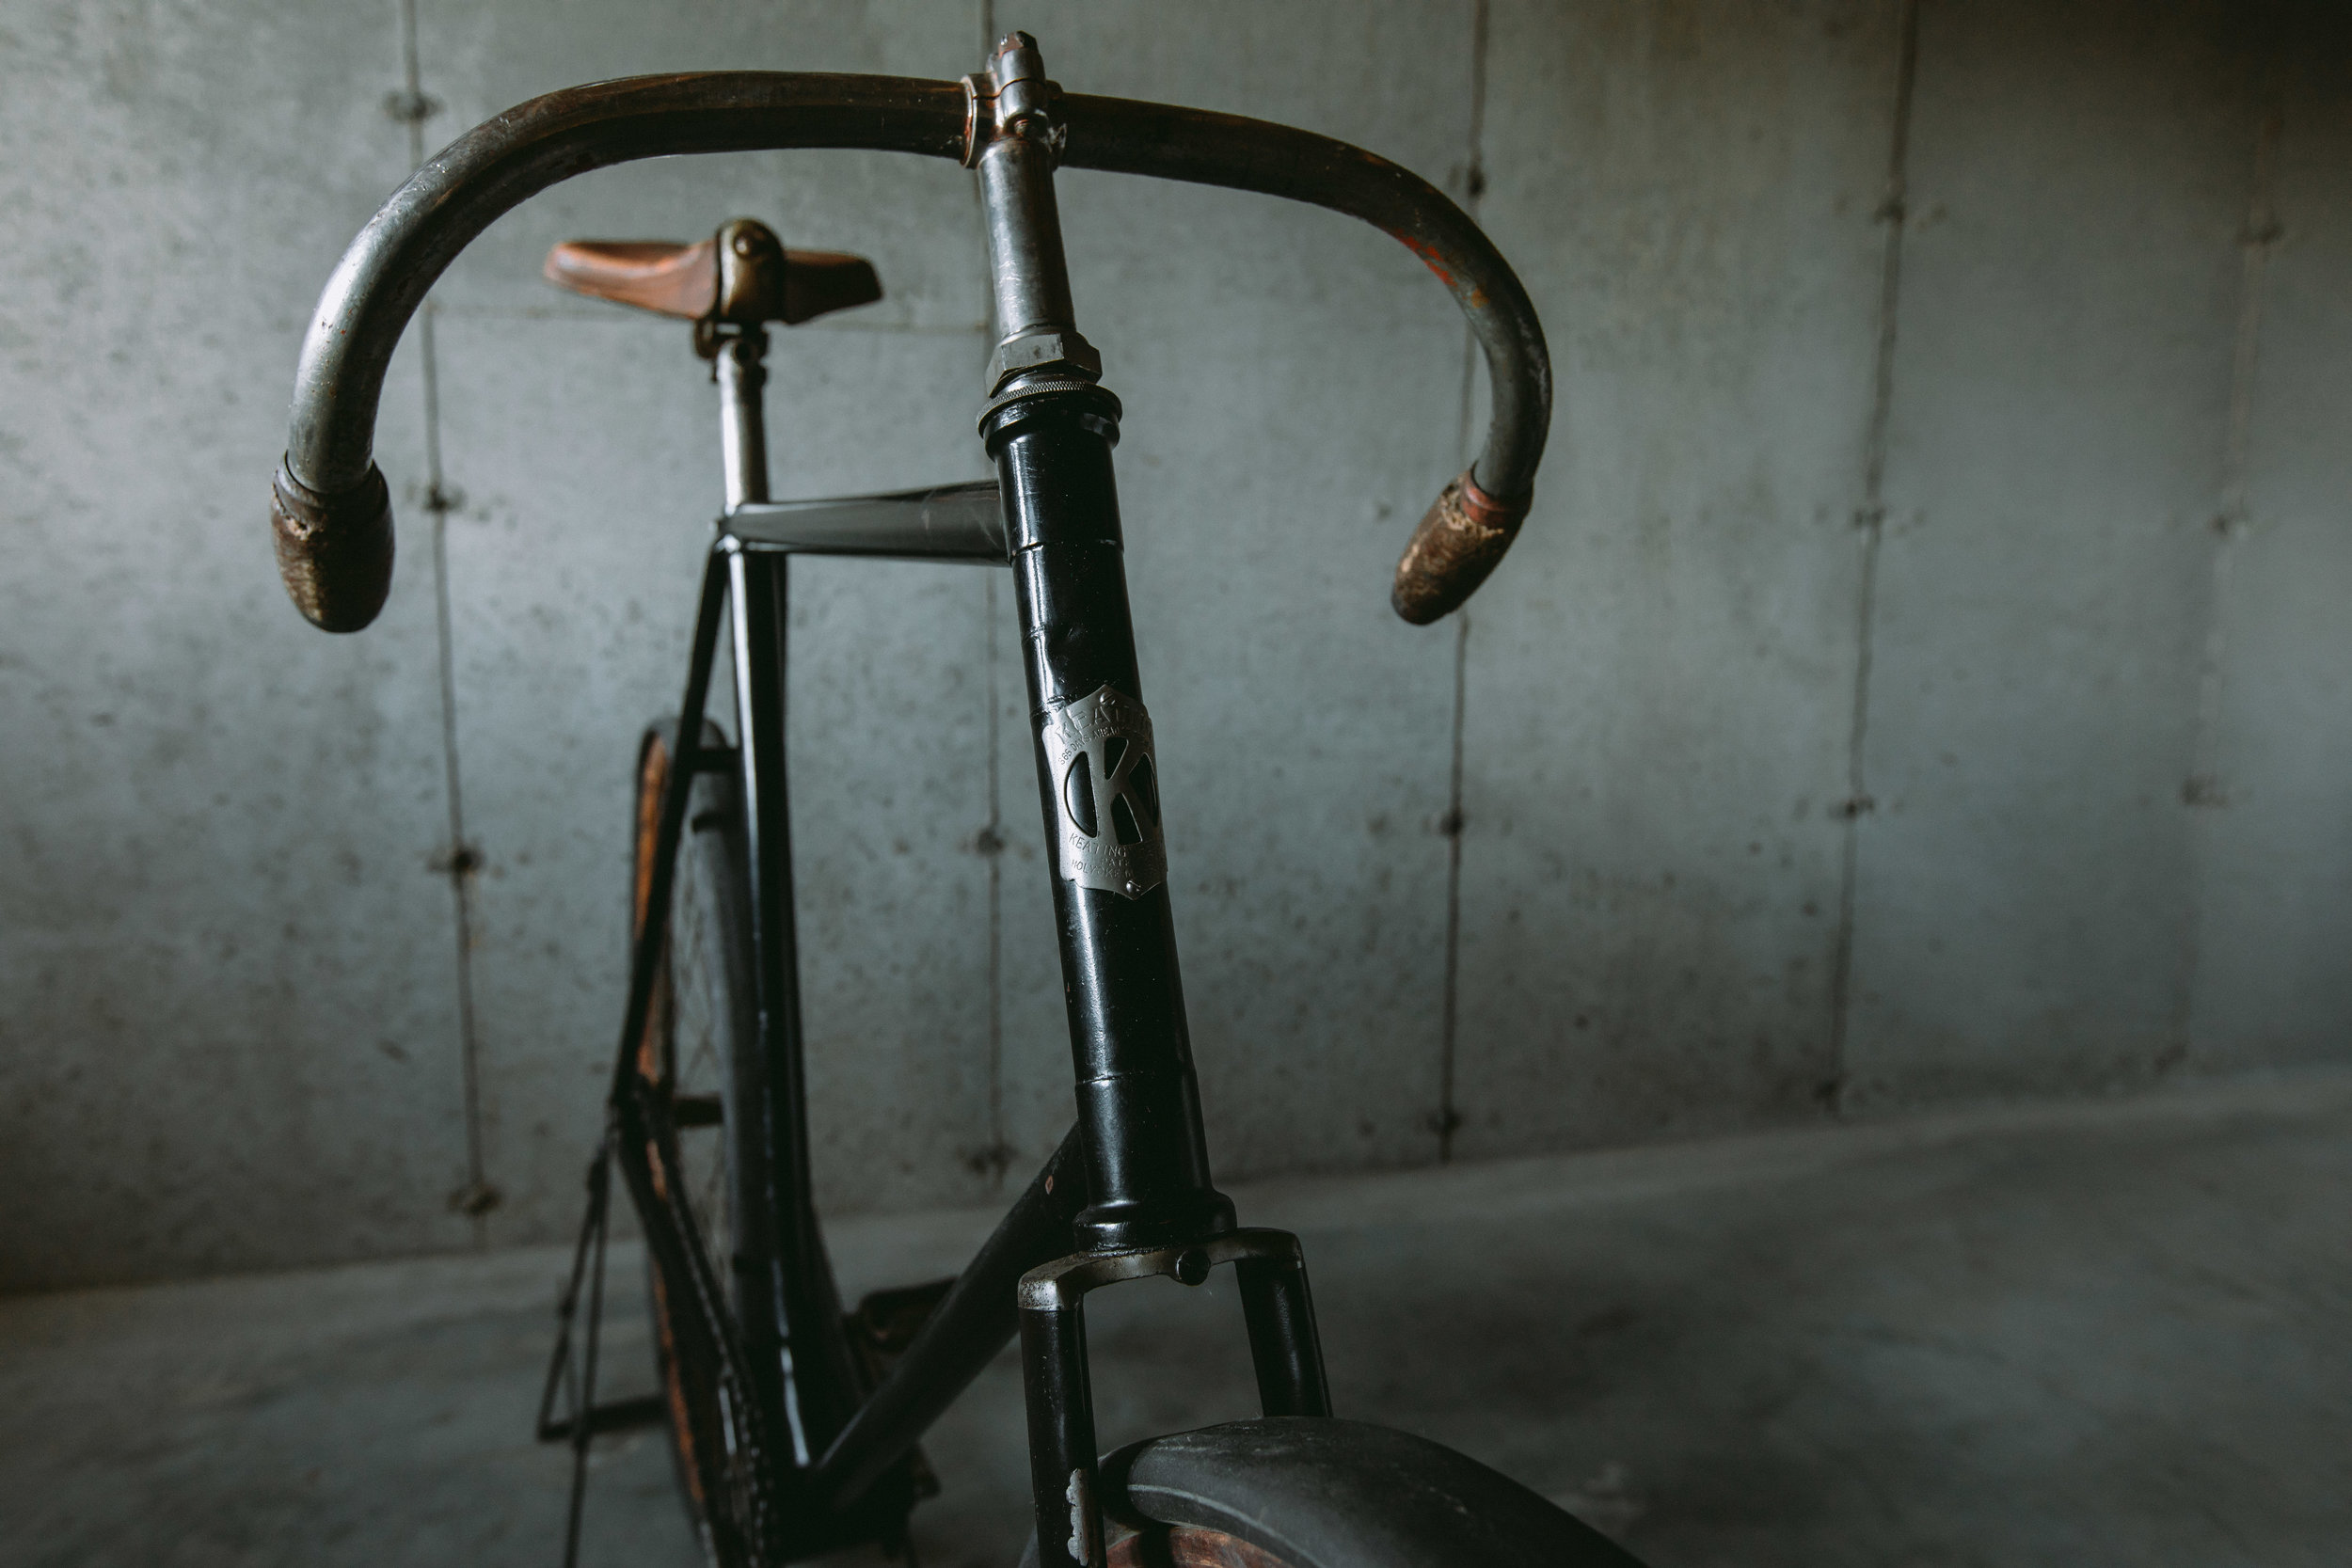 """Zero-offset stems were typical of the era, but Keating's handlebar design was unique to him. Seen here in """"Race"""" mode, the bar could be flipped for a more upright and comfortable riding position depending on the riders sensibilities."""